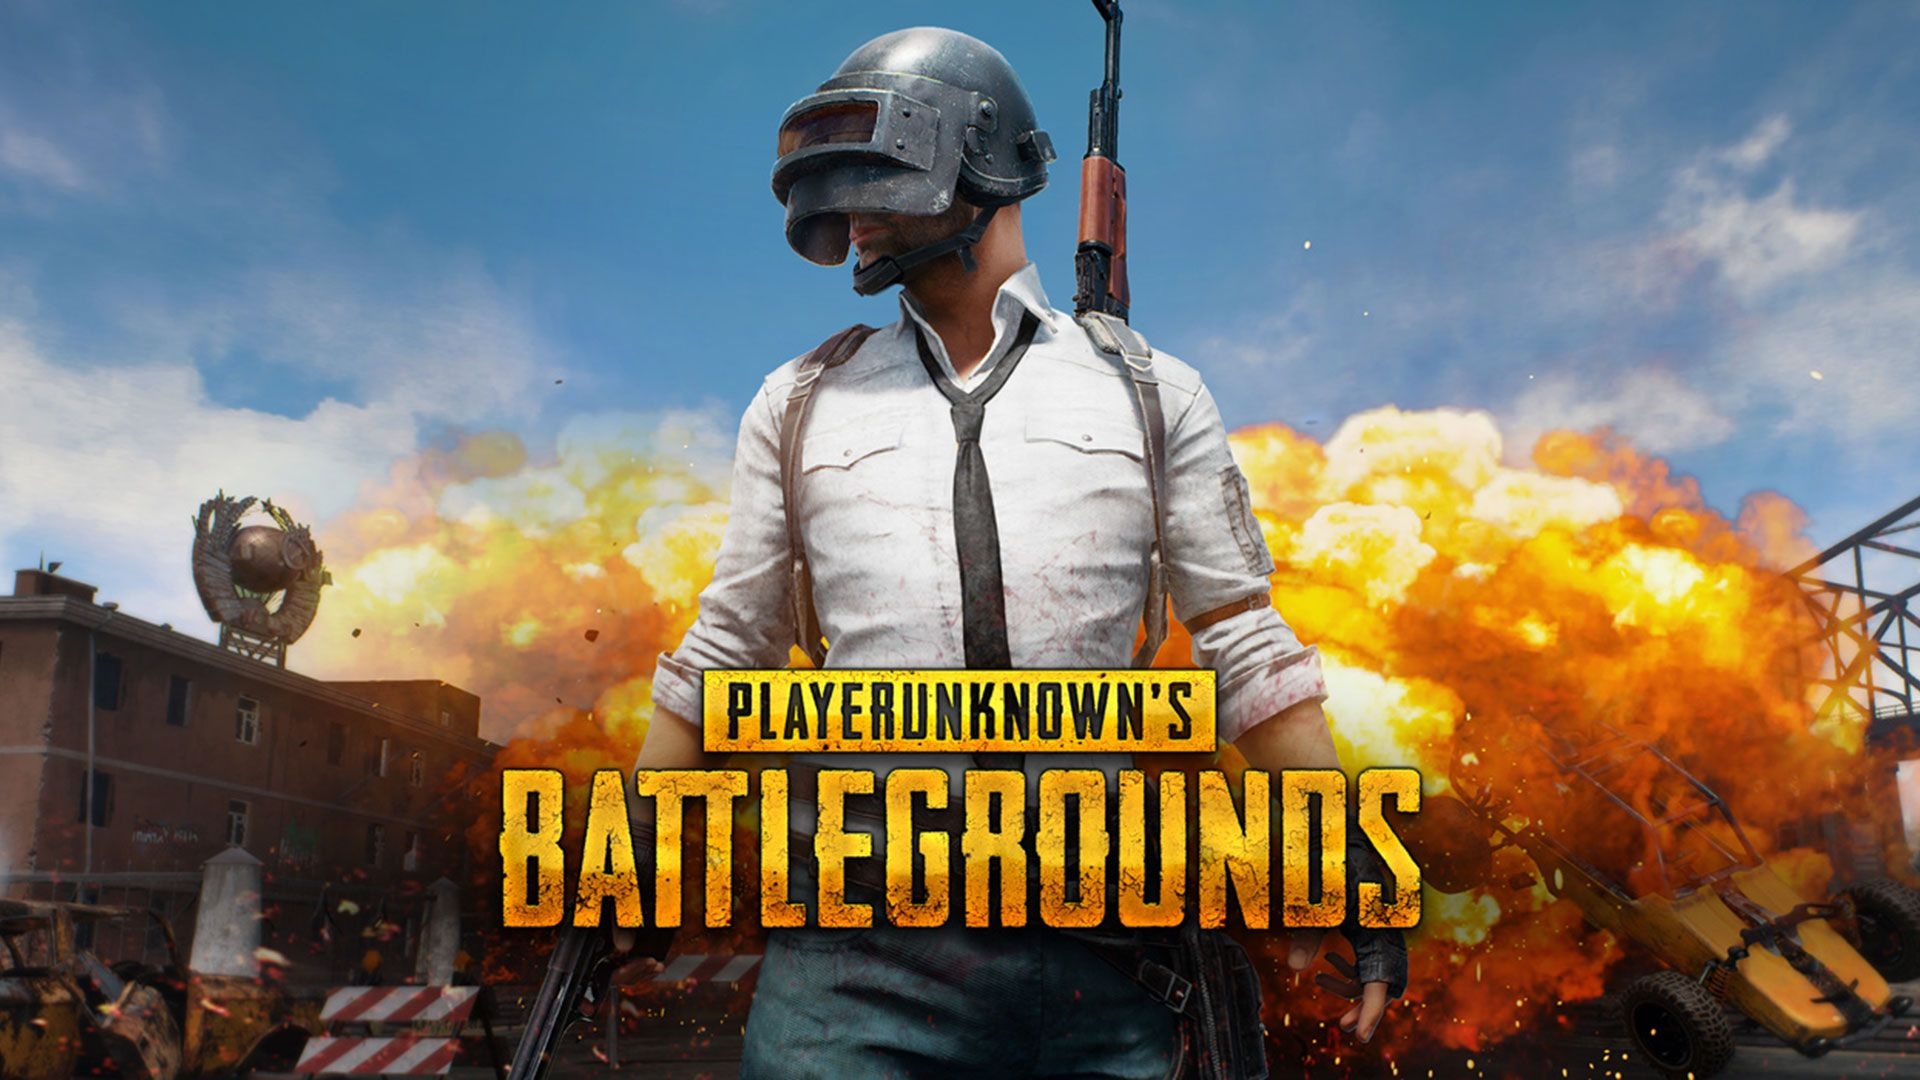 Download Pubg 1 Wallpapers To Your Cell Phone: Pubg Wallpapers Full Hd On Wallpaper 1080p HD